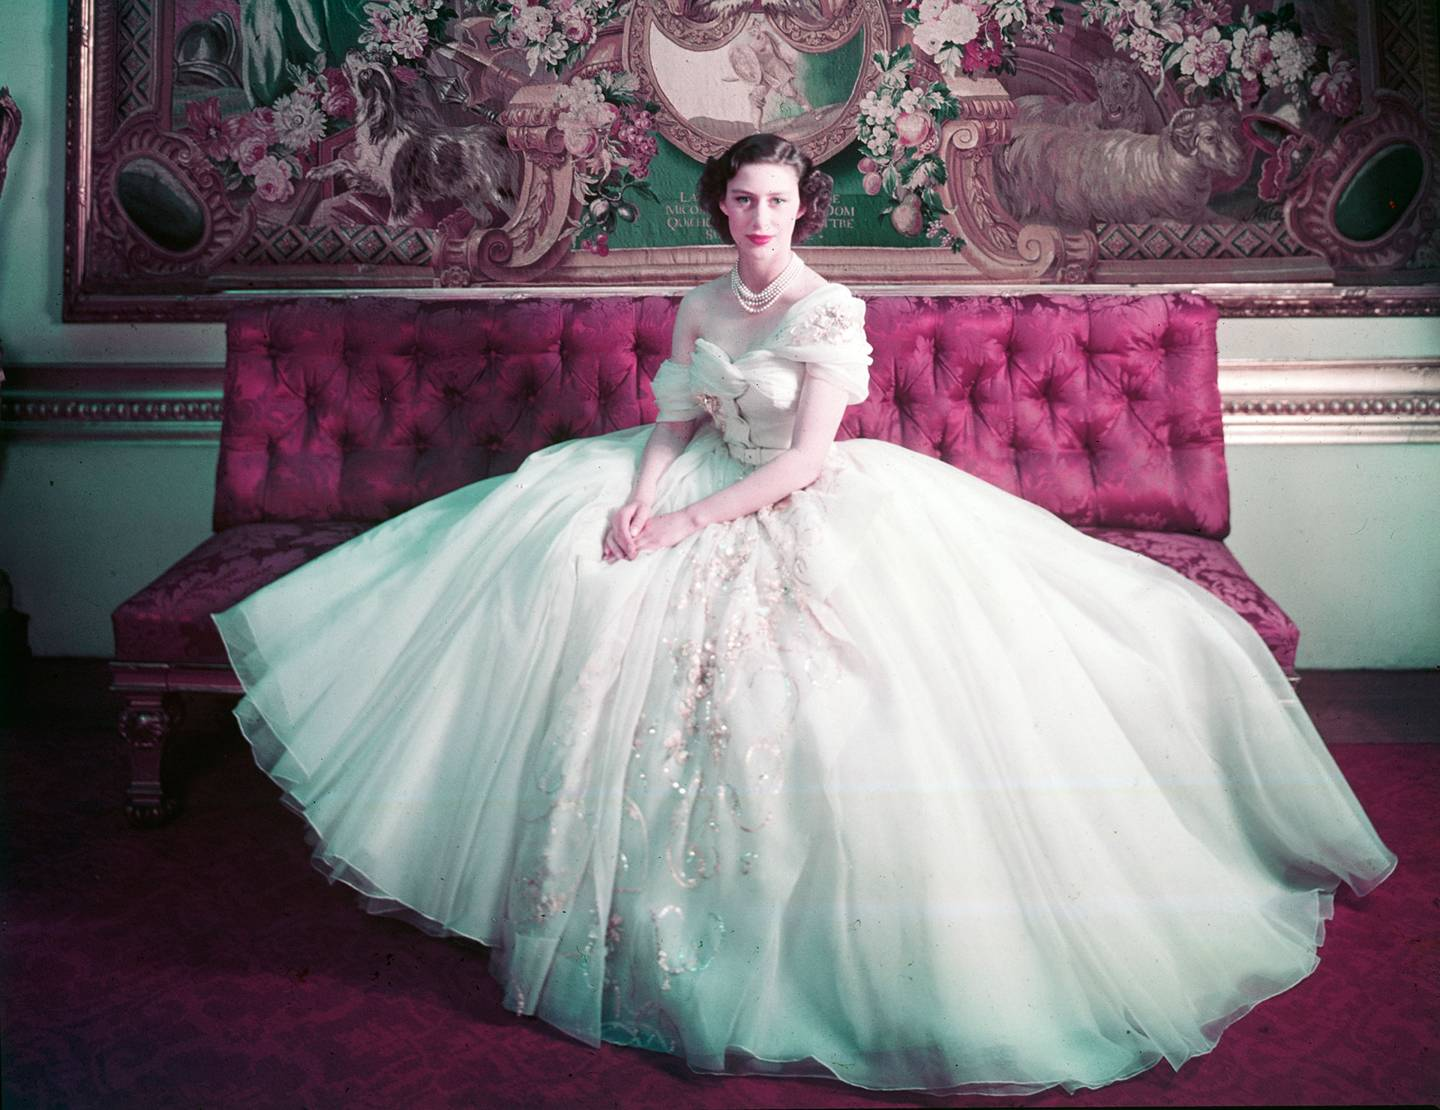 Royal Portrait of Princess Margaret on her 21st birthday, Photograph by Cecil Beaton (1904–1980), © Victoria and Albert Museum, London